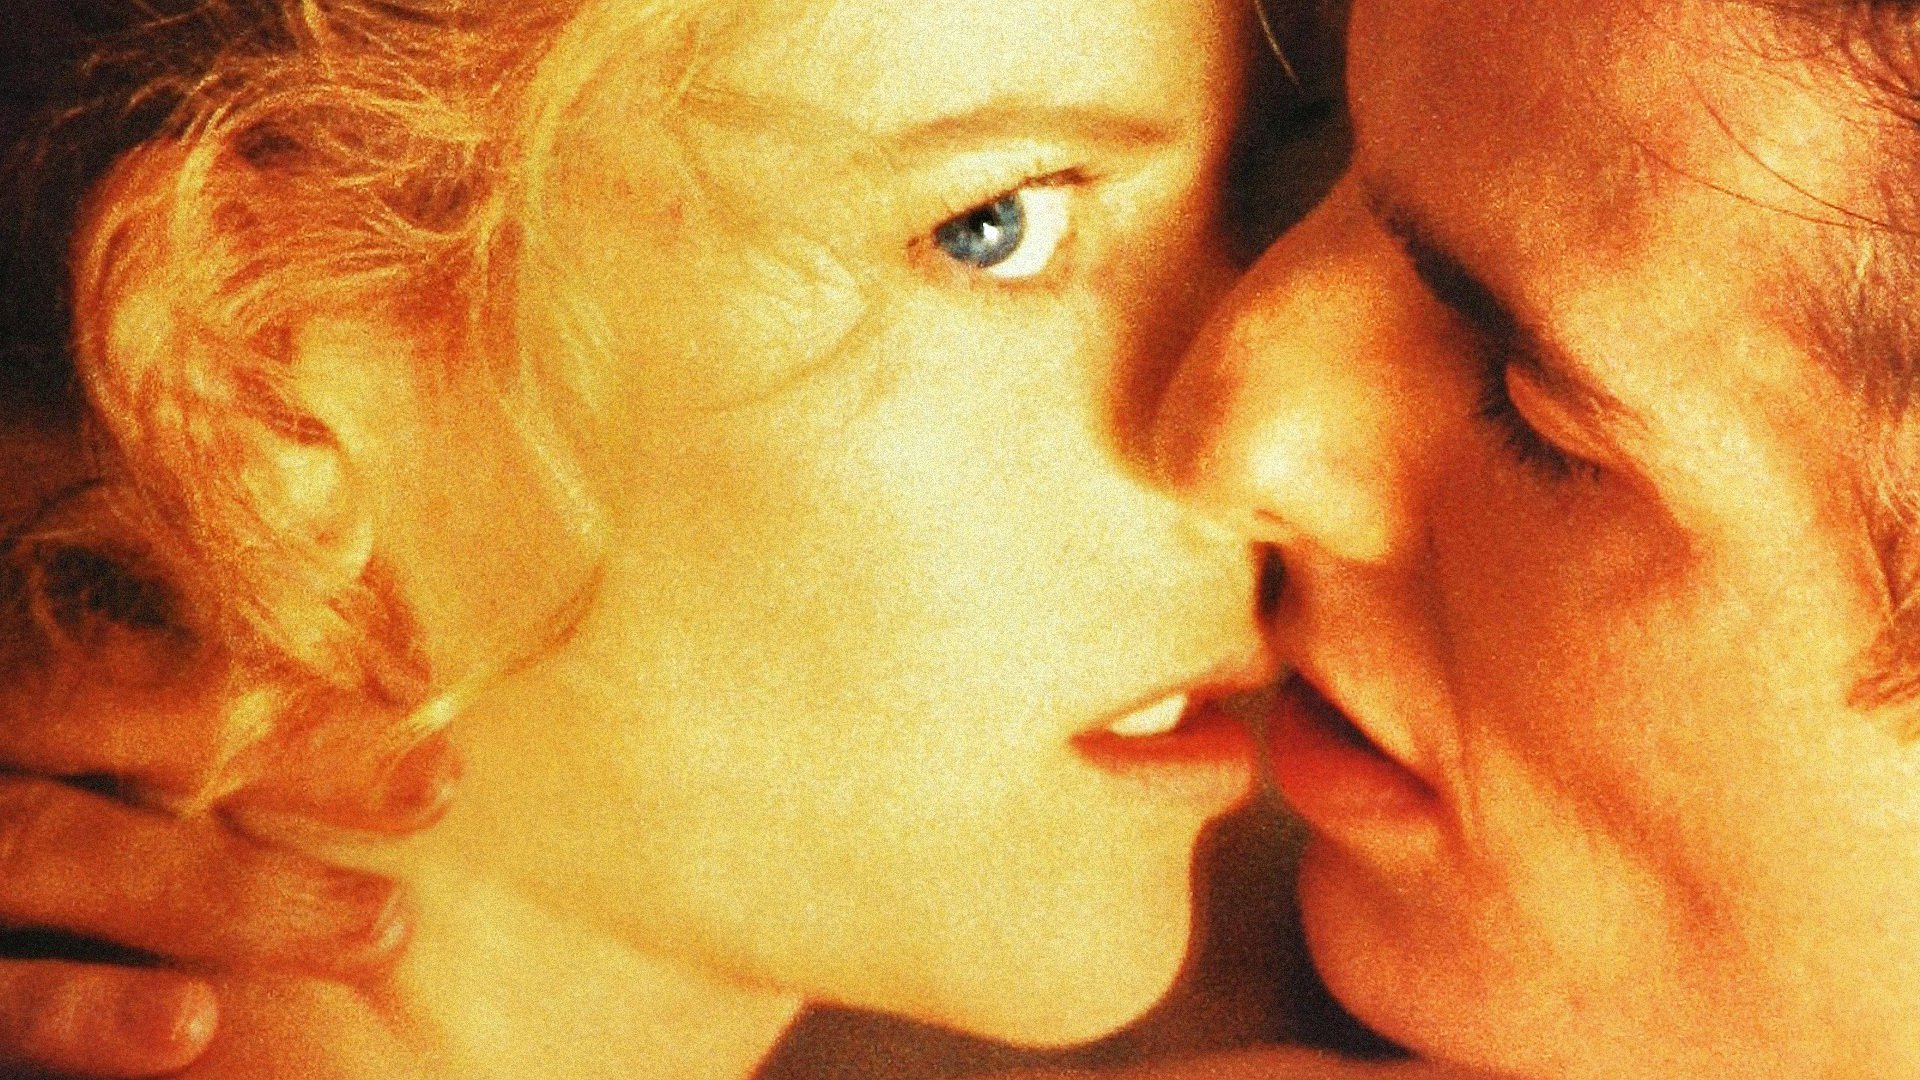 Eyes Wide Shut - Tom Cruise and Nicole Kidman